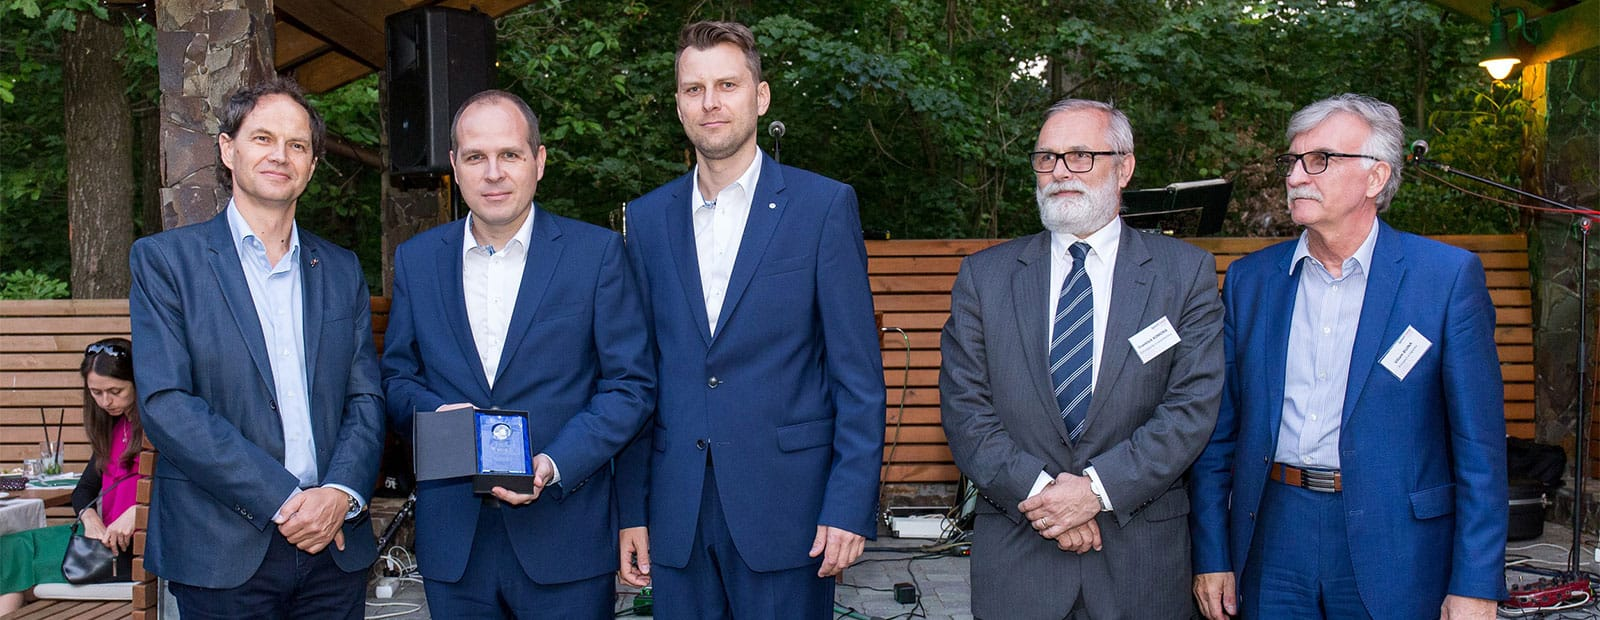 Krone and Trailer Partner win readers' award TOP SLOVAKIA 2017